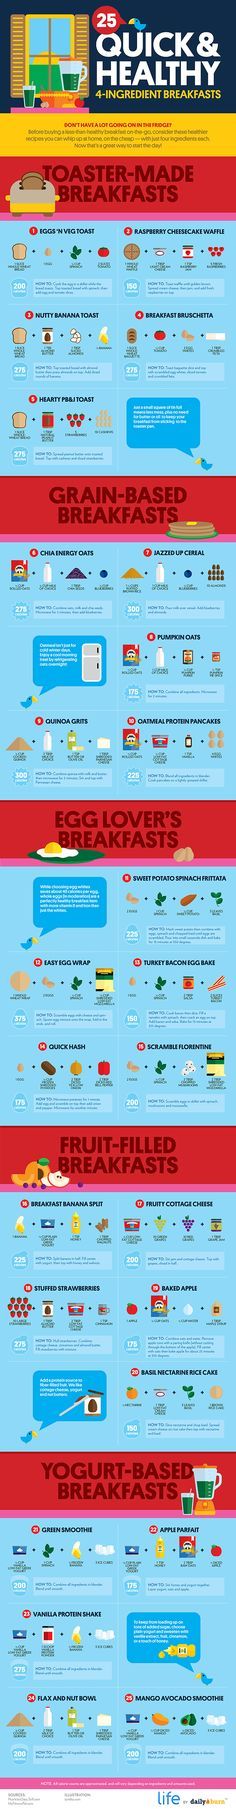 25 Quick and Healthy 4-Ingredient Breakfasts